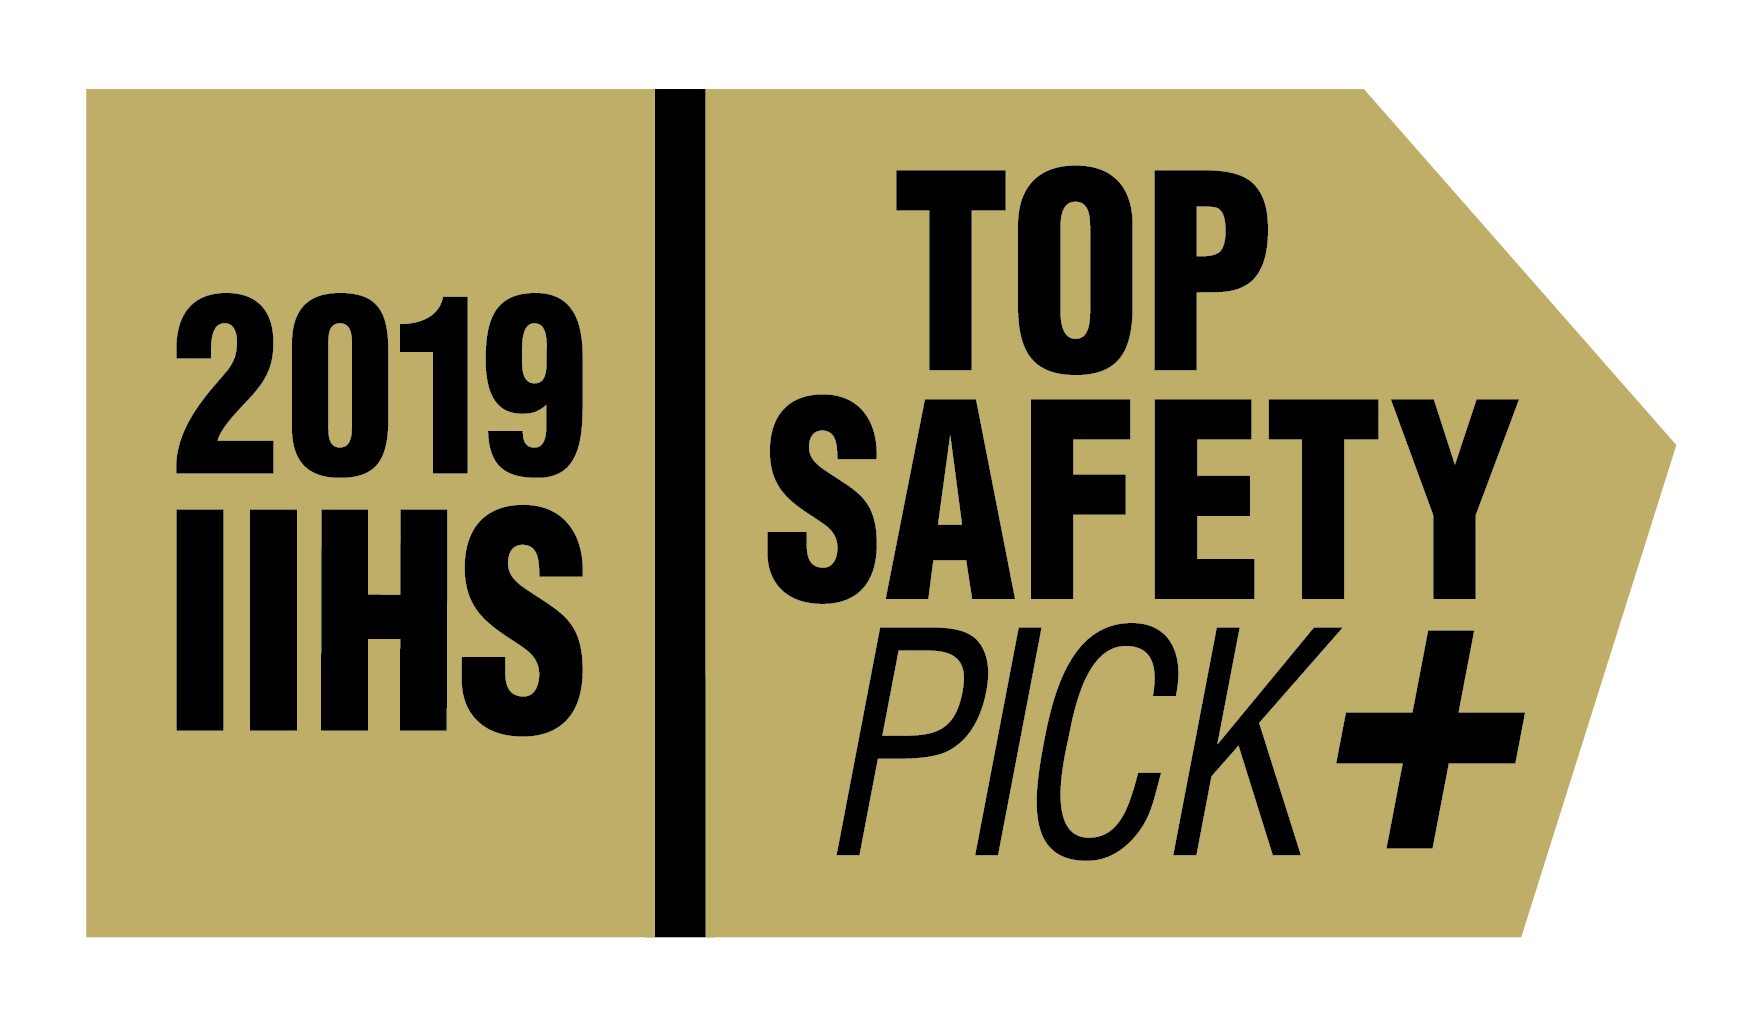 Top Safety Pick Award Plus